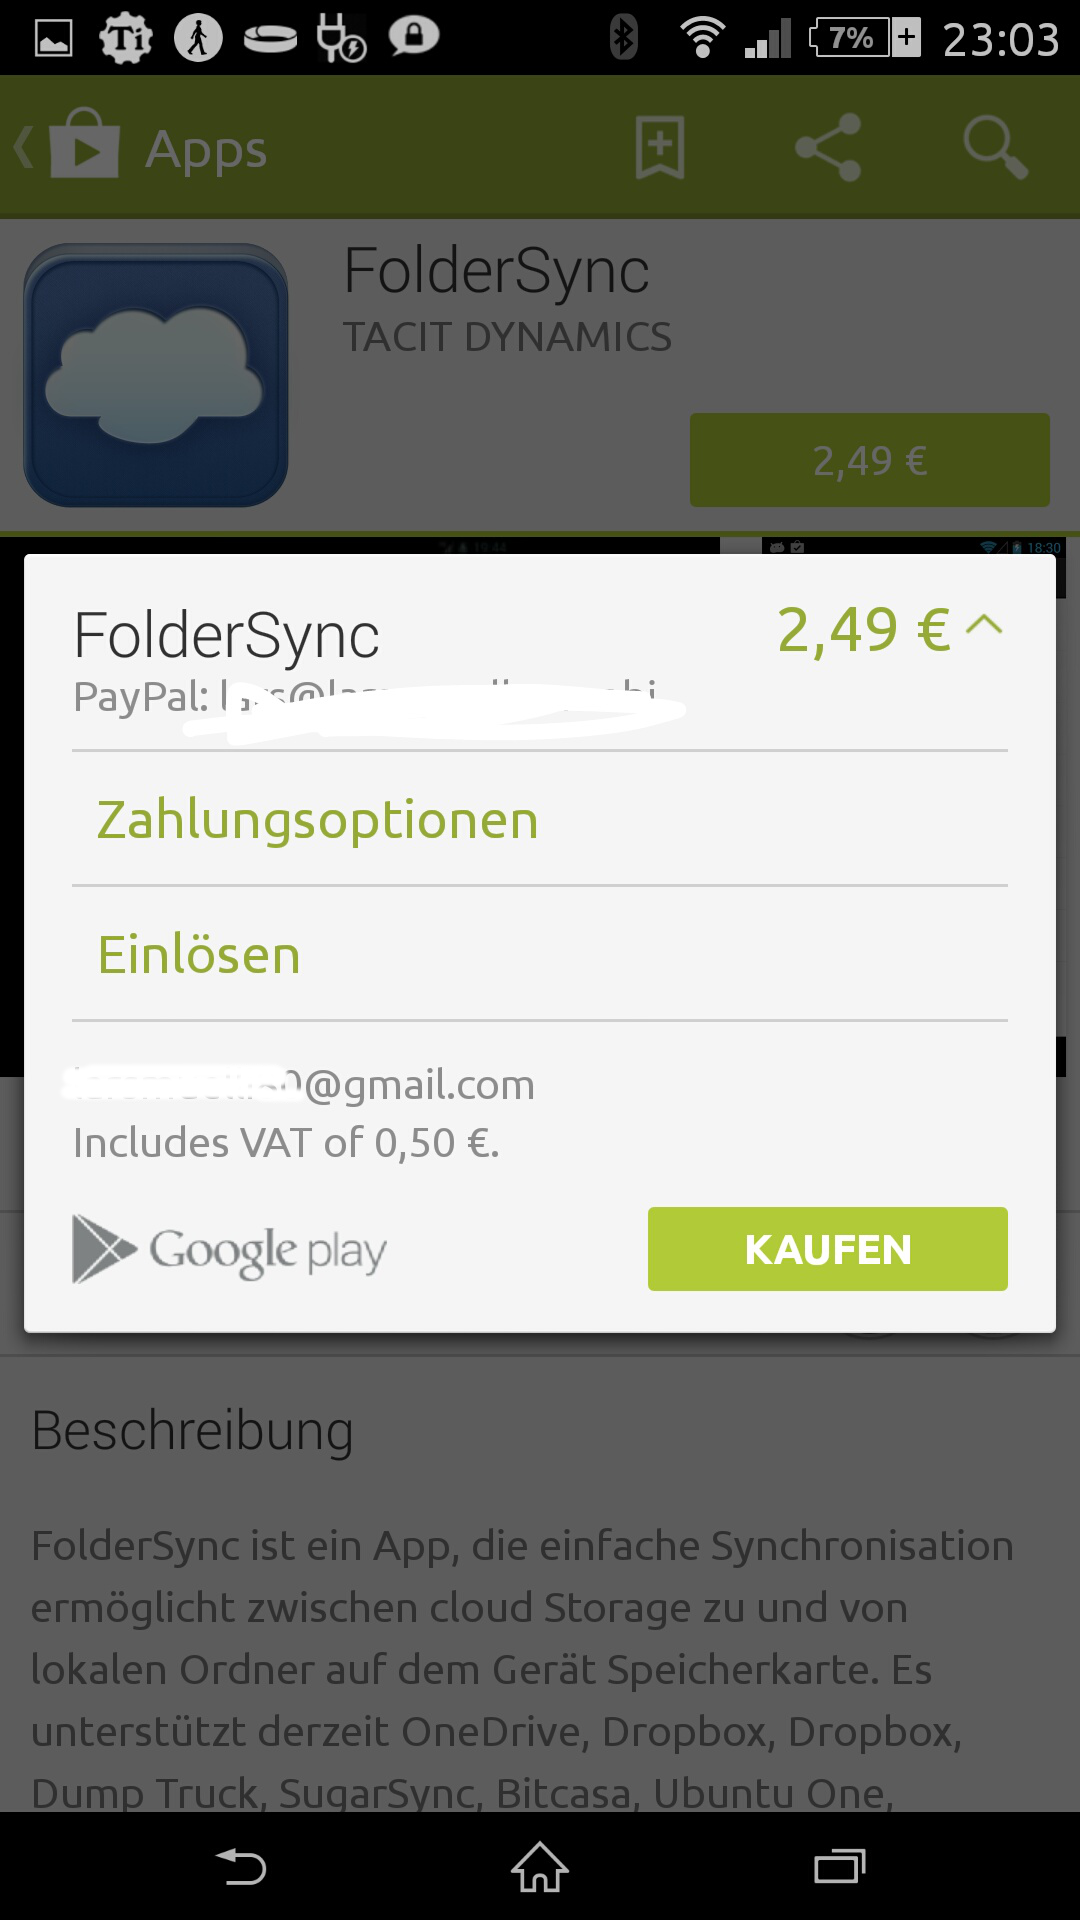 Fehler 403 Android